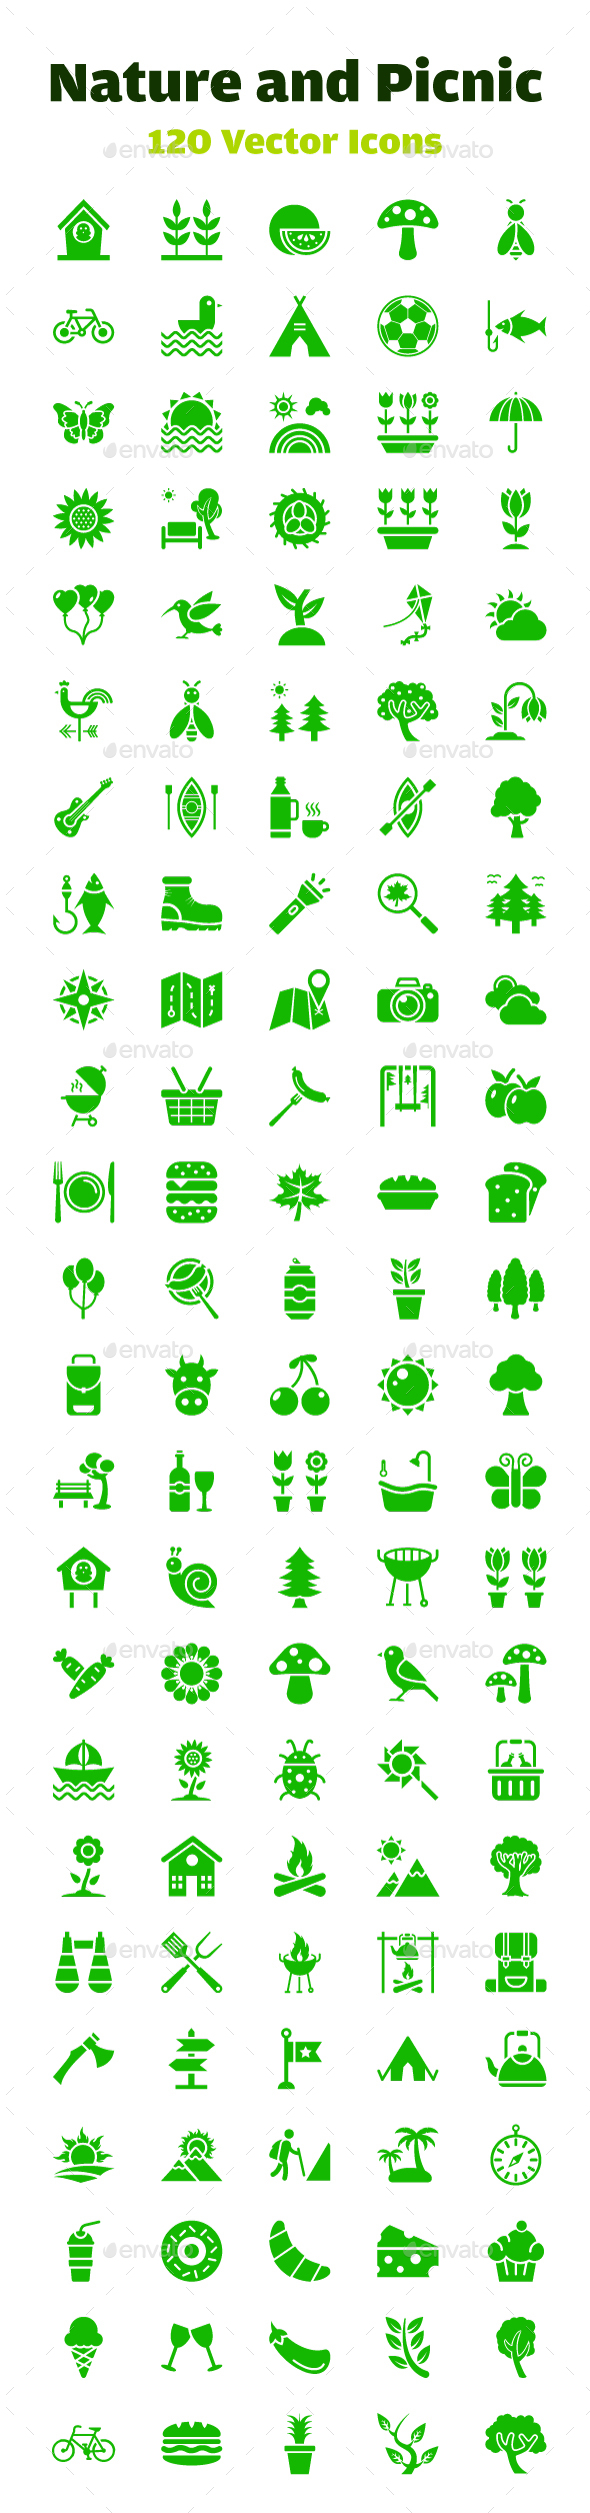 120 Nature and Picnic Vector Icons - Icons